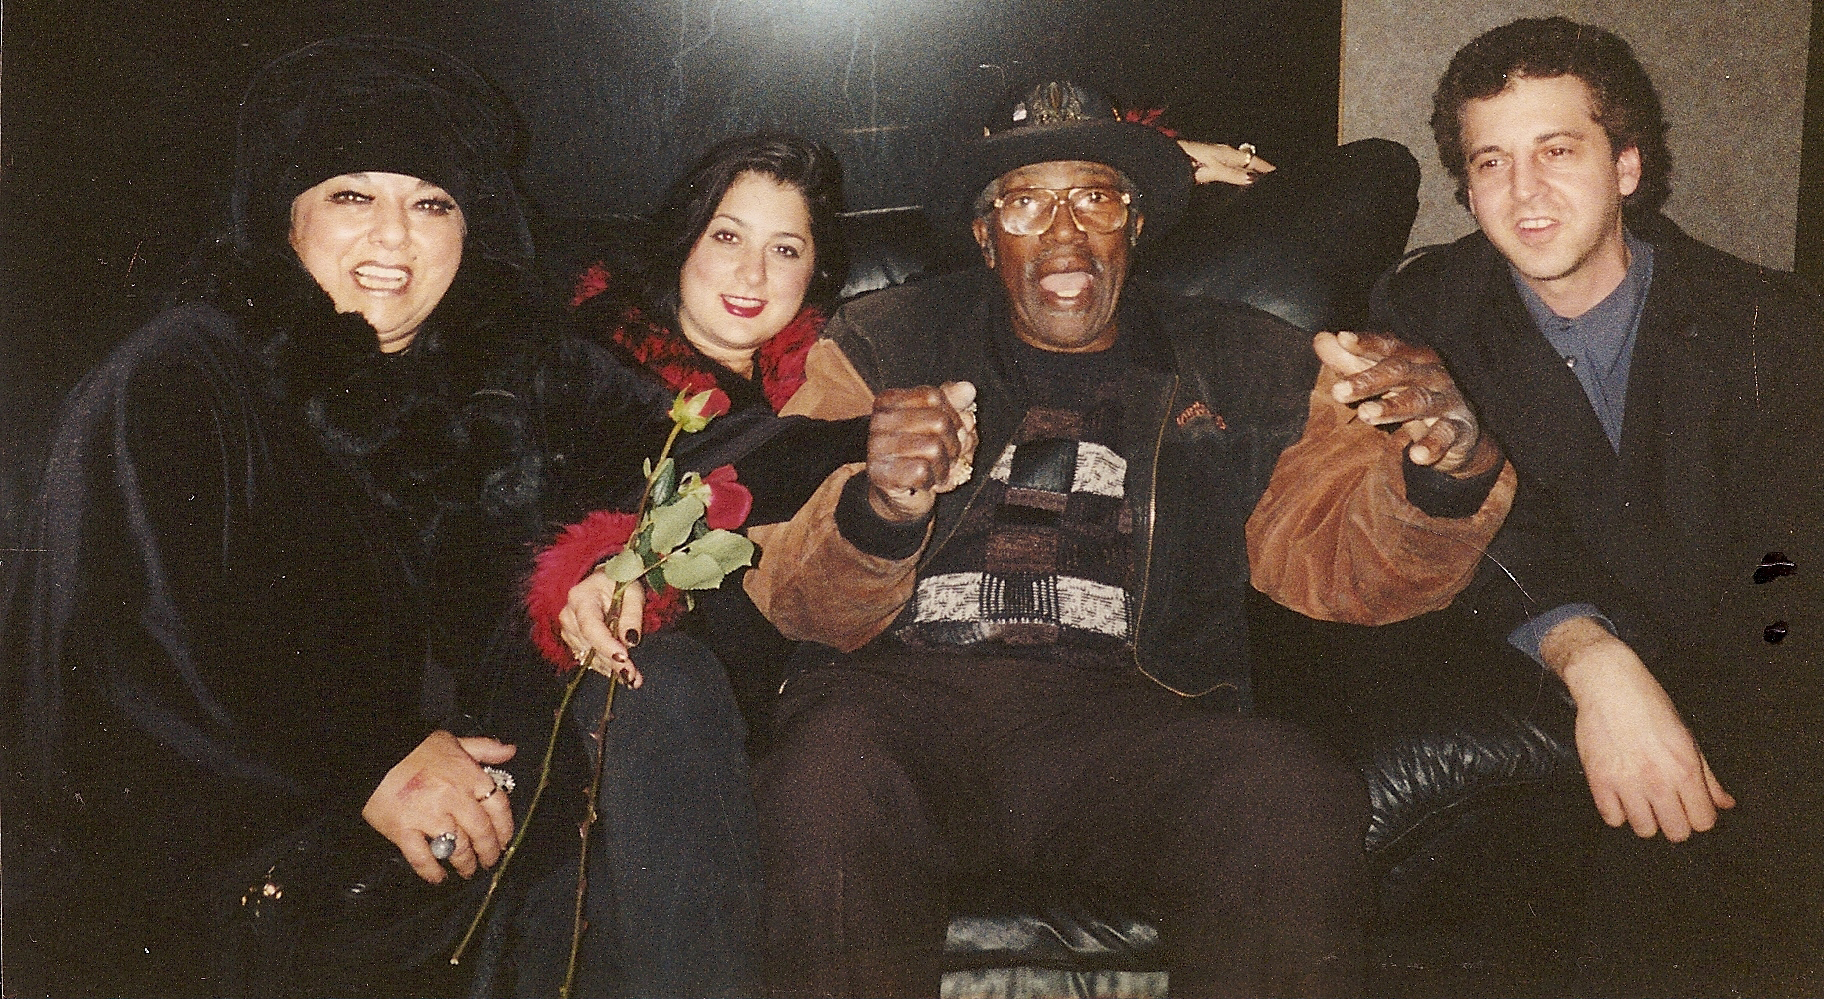 Marilyn Percansky, Romy Percansky, Bo Diddley, Magic Marc Backstage at The Rock Nightclub / Maplewood, Minnesota / November 16, 2002